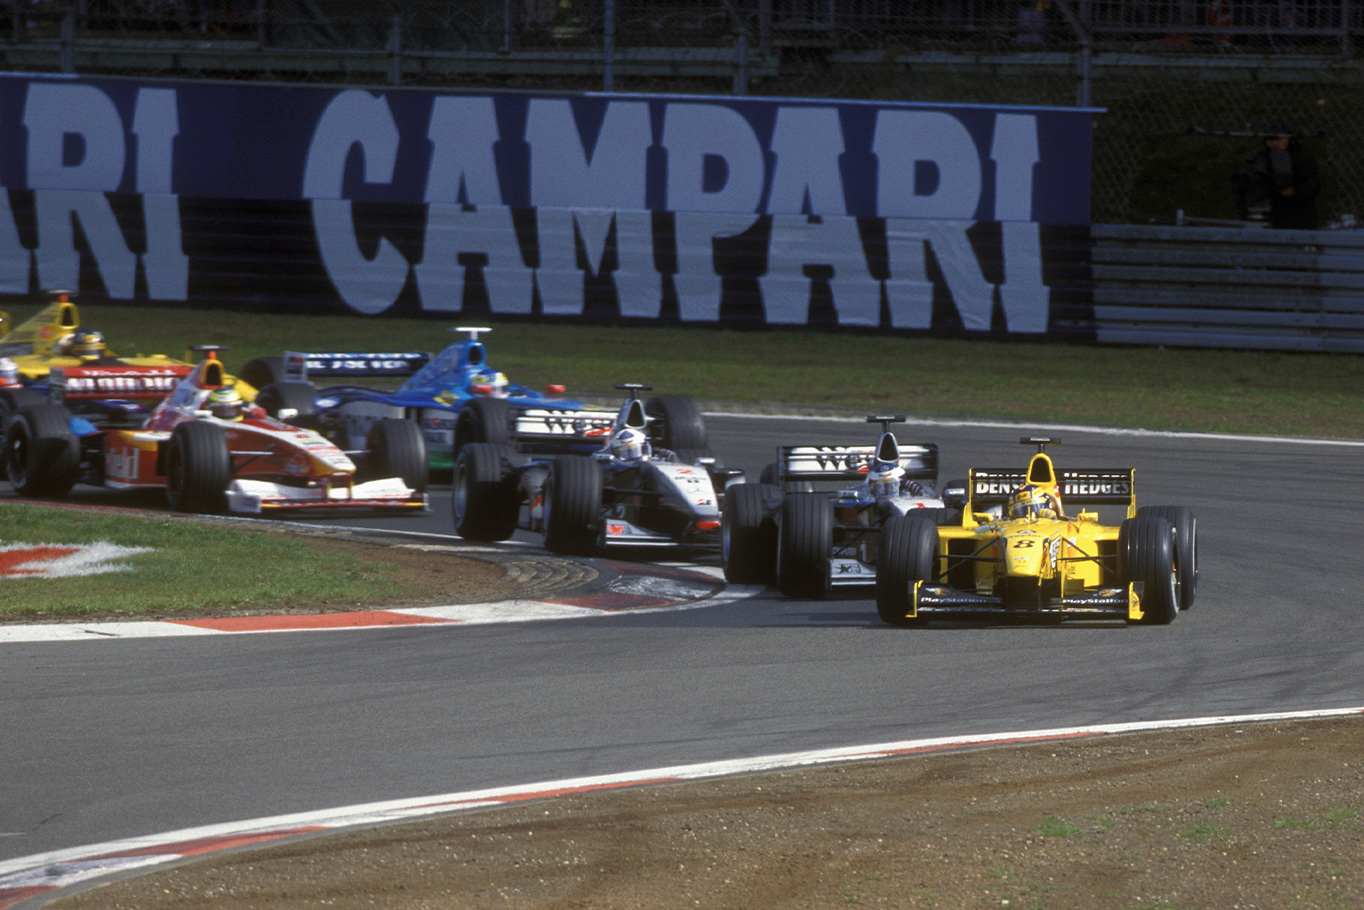 Heinz Harald Frentzen leads into the first corner in the 1999 European Grand Prix at the Nurburgring